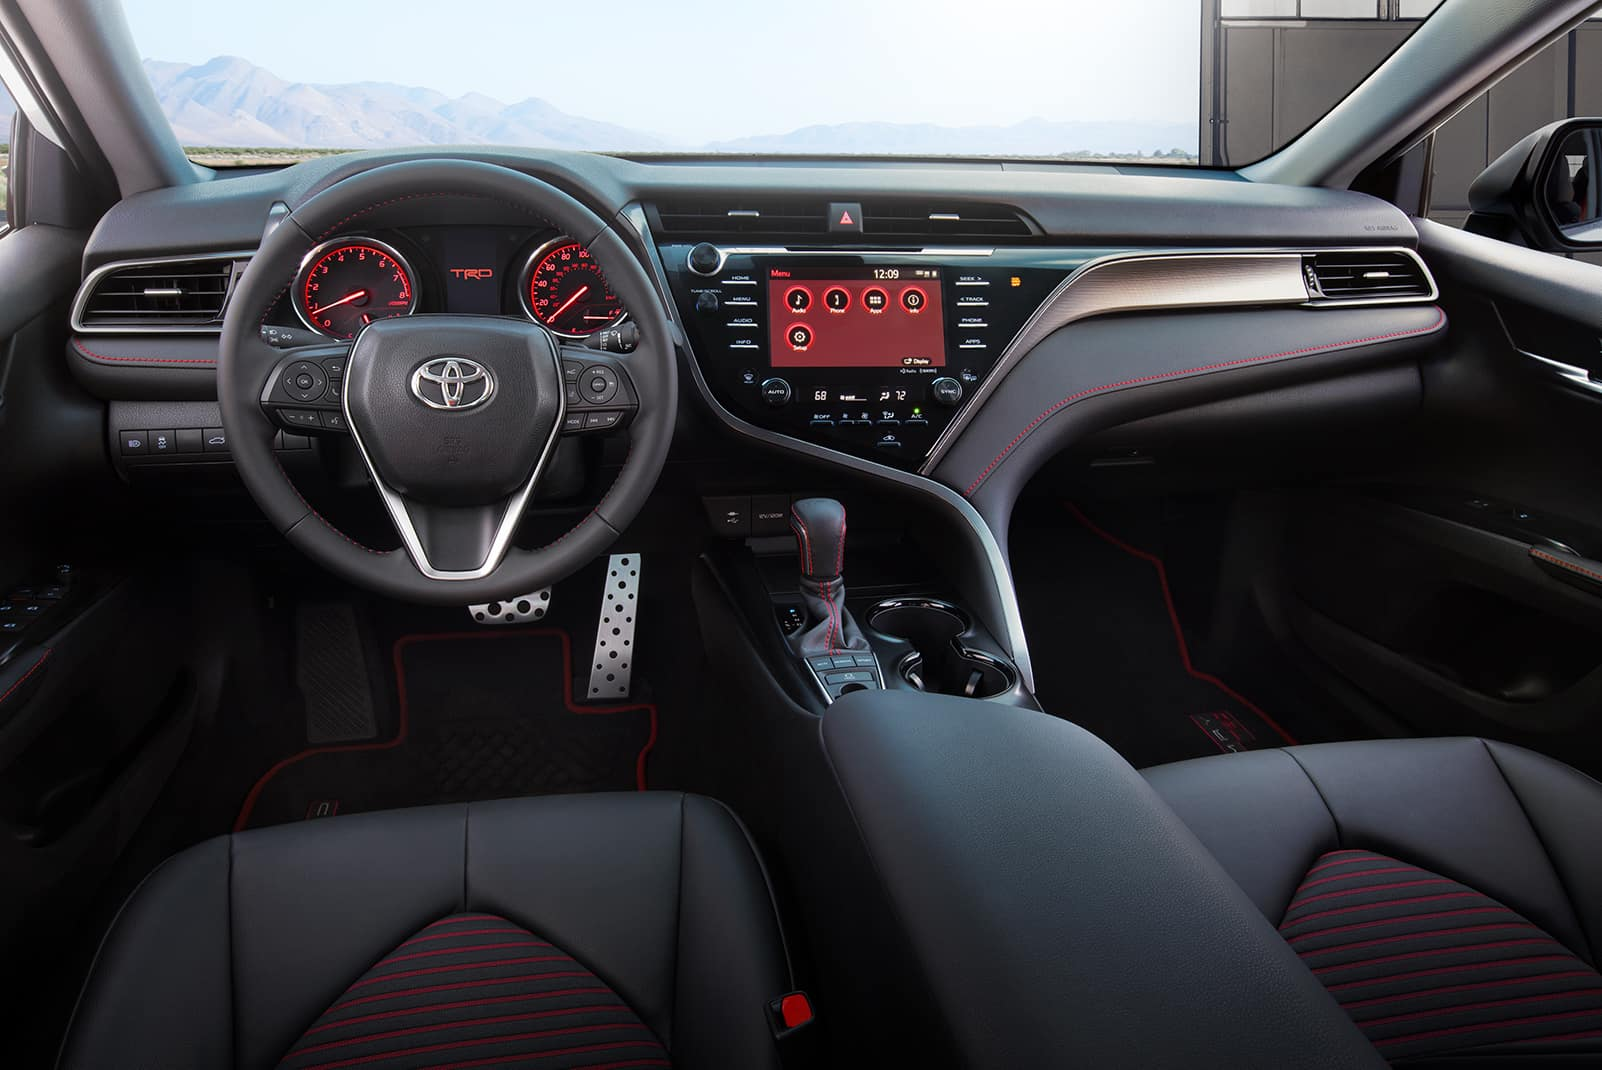 Model Features of the 2020 Toyota Camry at Hanover Toyota | The interior of the 2020 camry